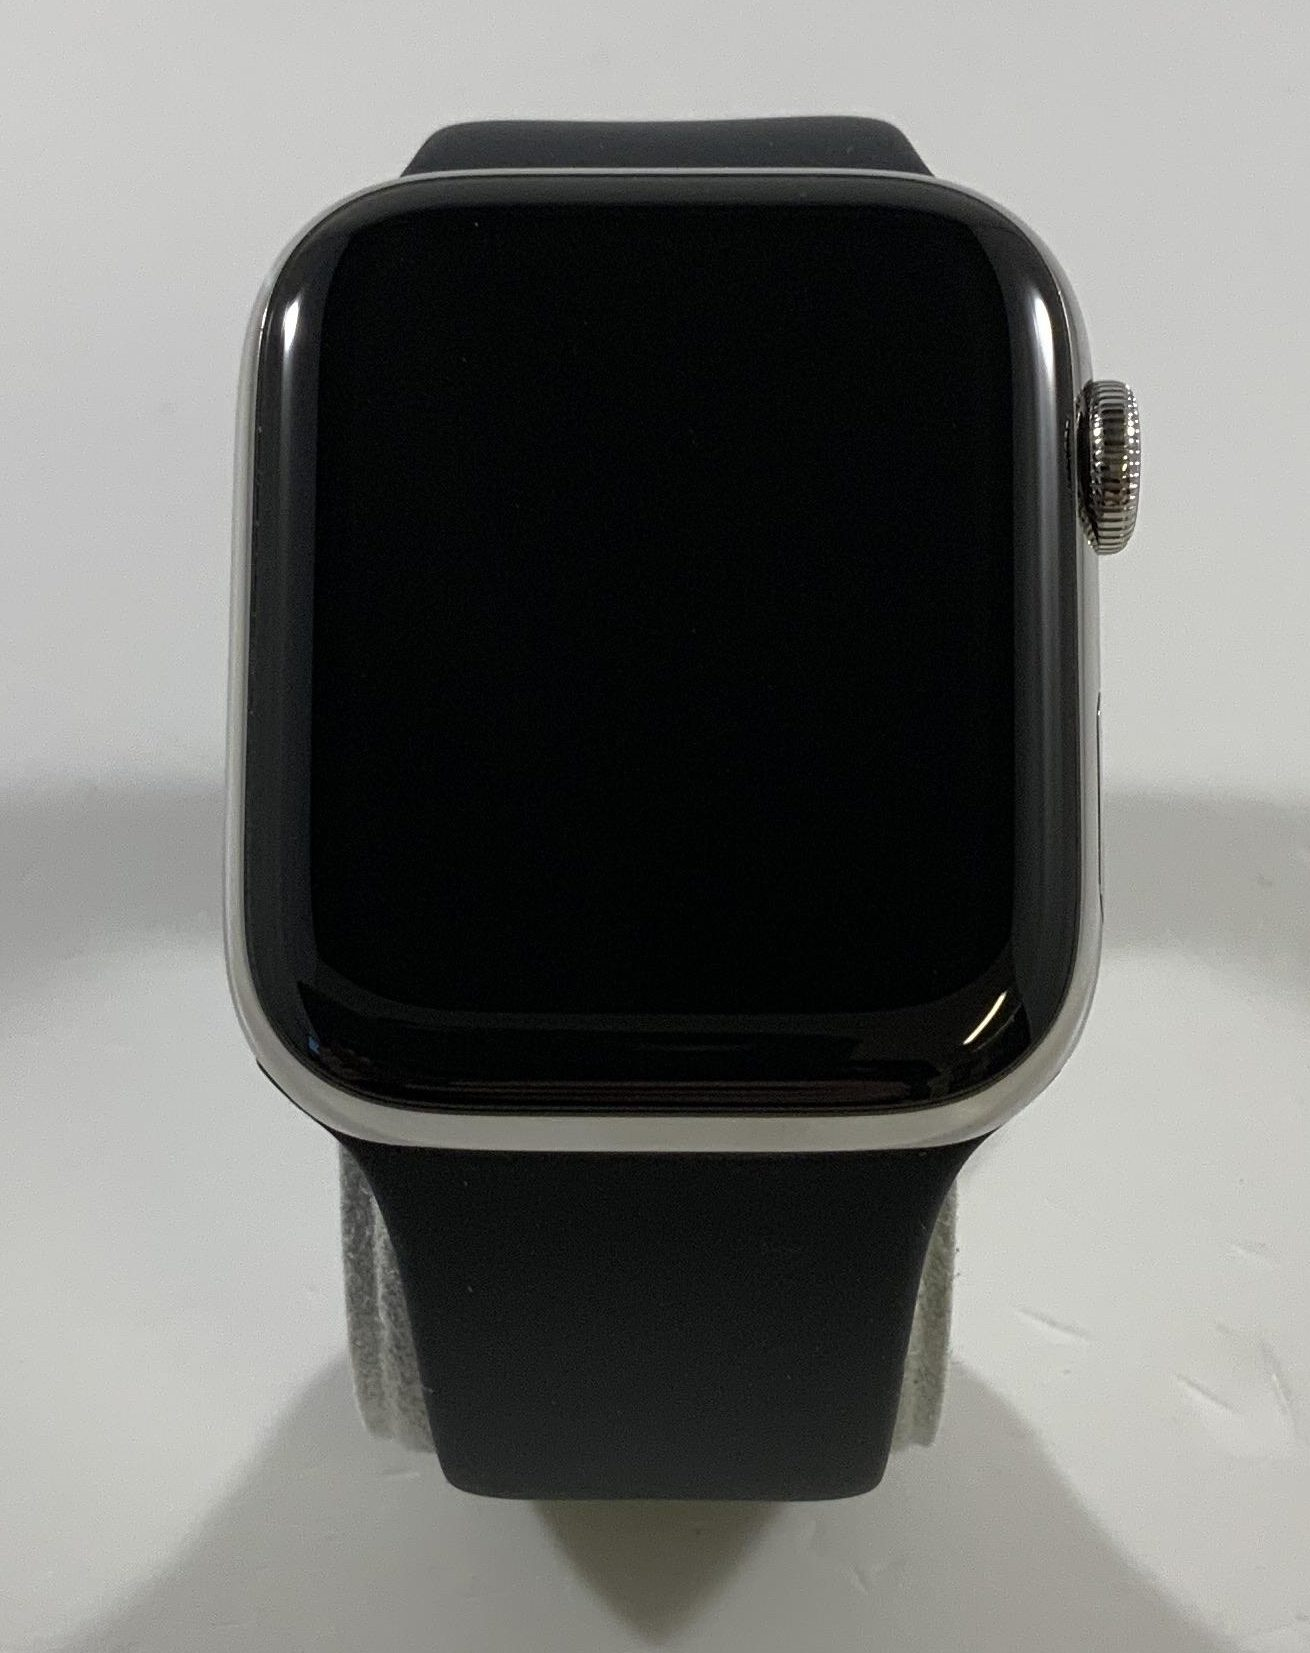 Watch Series 5 Steel Cellular (44mm), Space Black, Bild 1